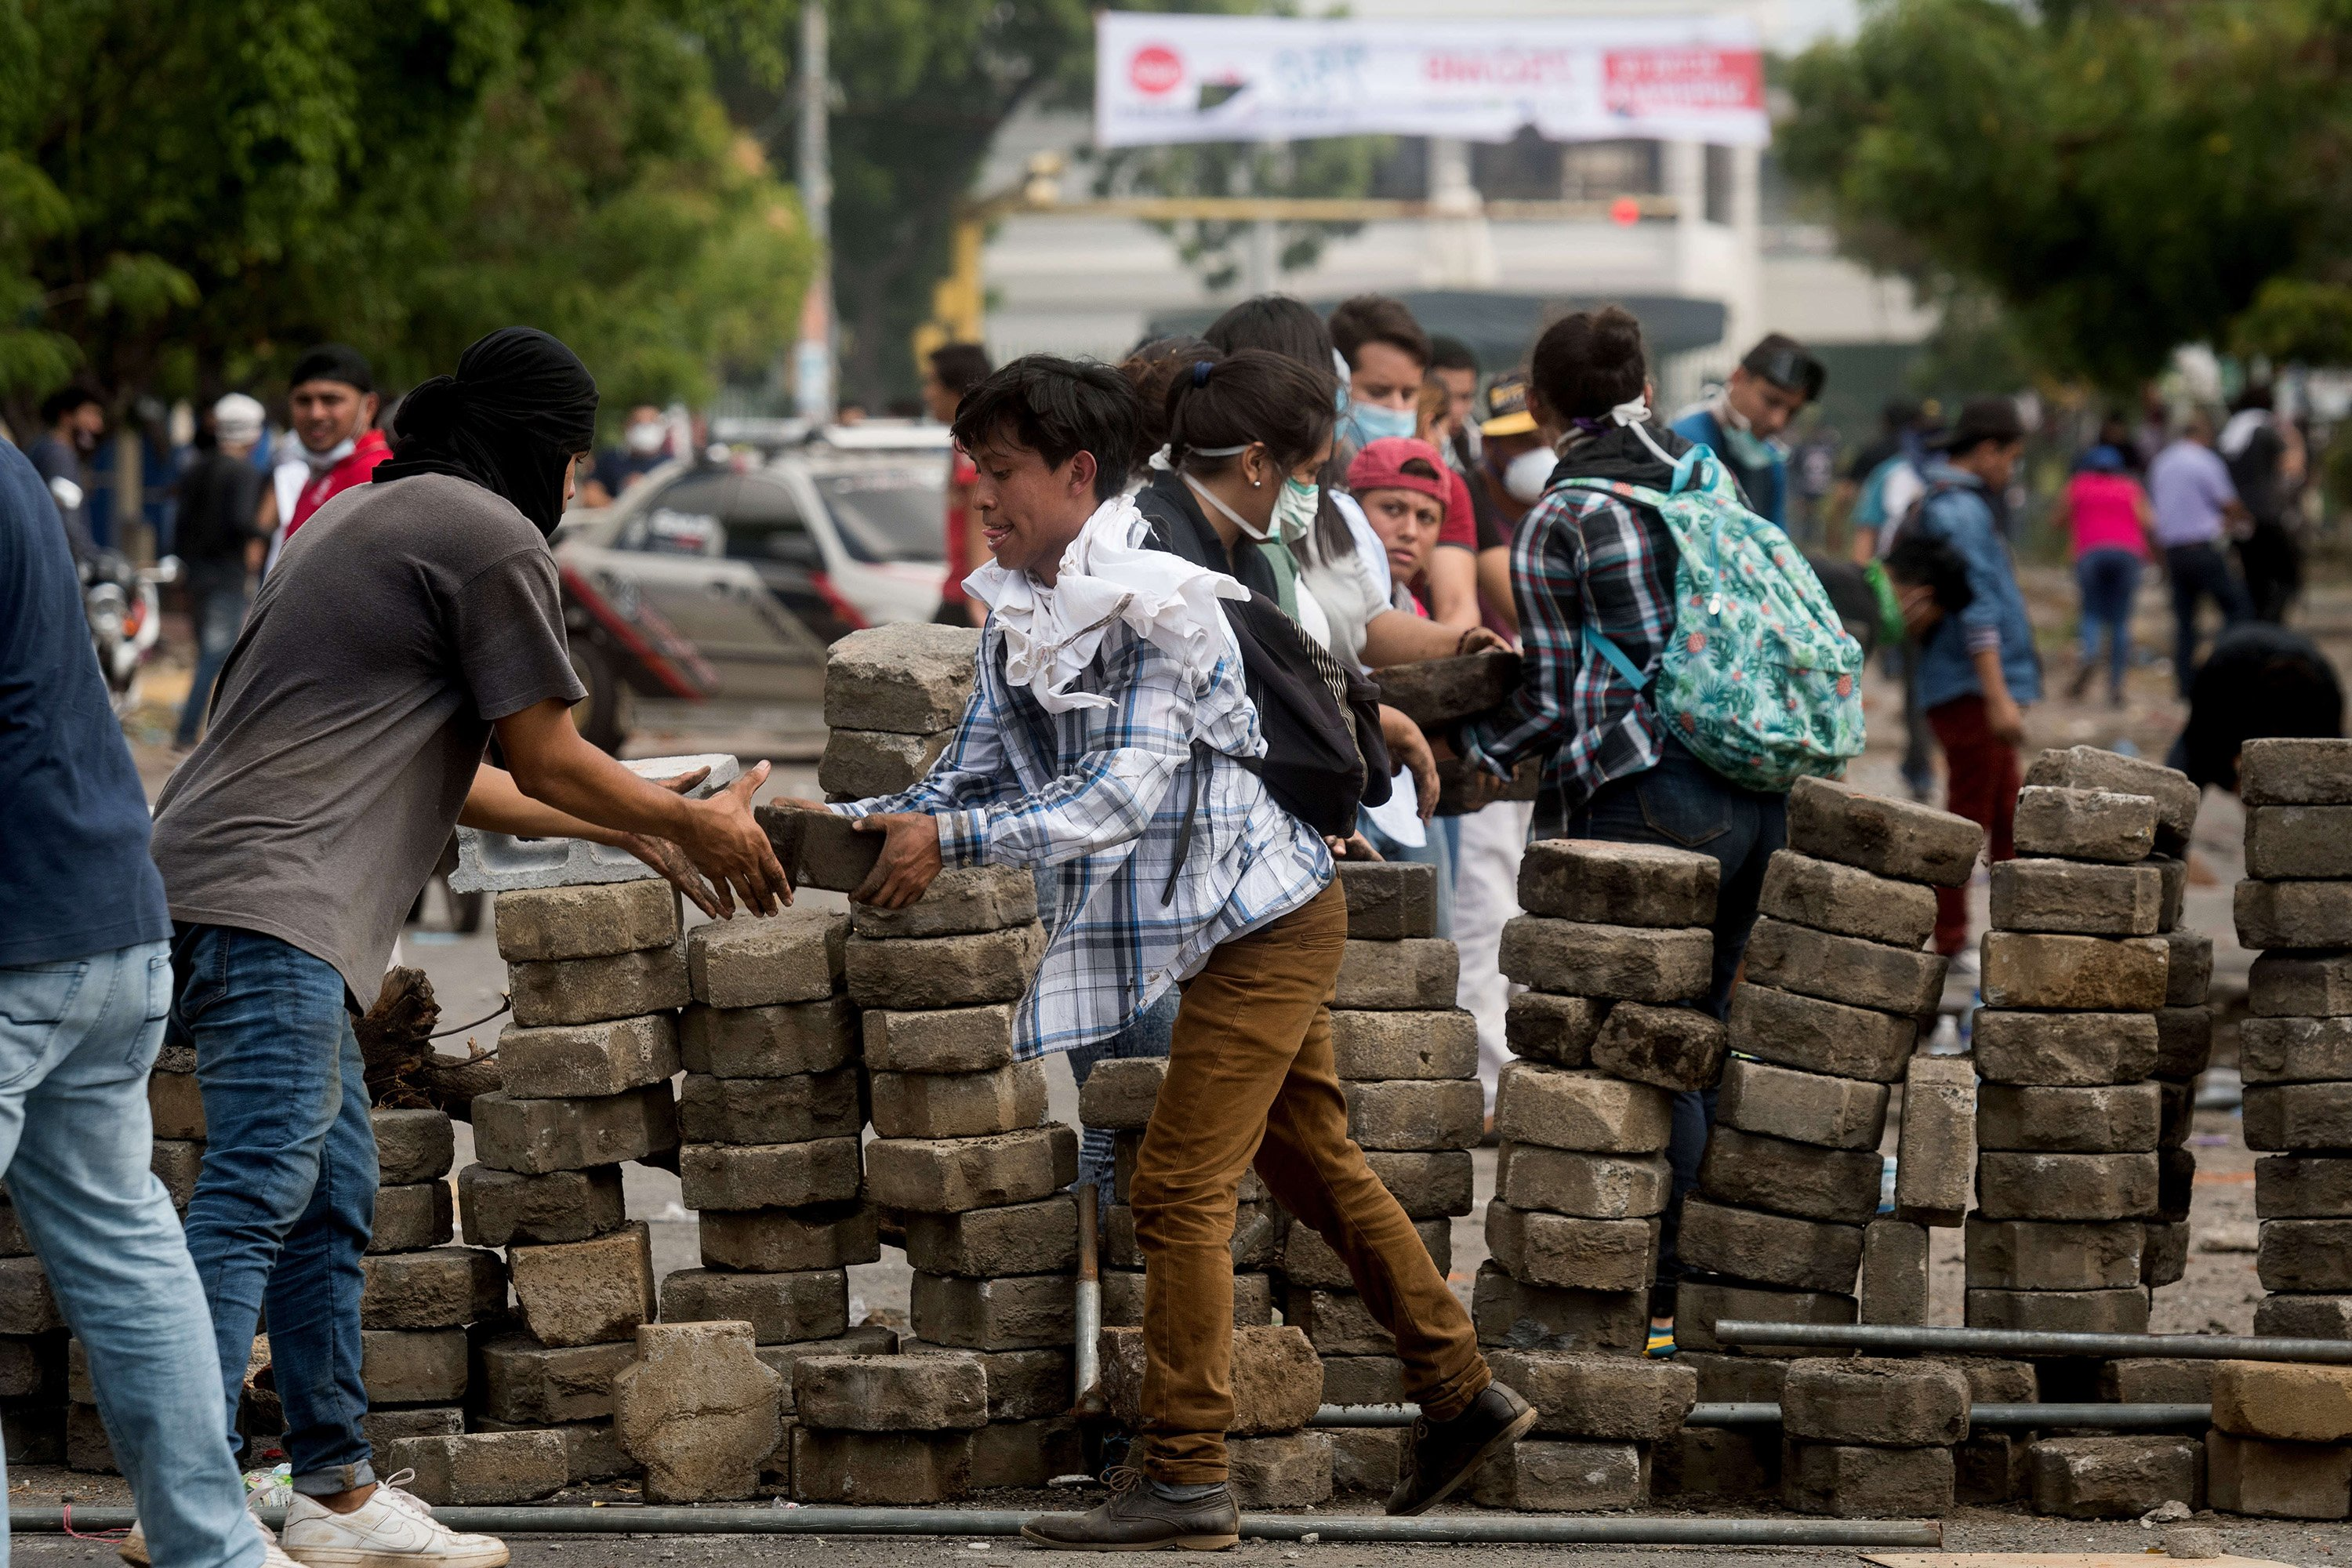 Protestors barricade a street during protests against an increase in taxation as a consequence of new social reforms and voice their dismay with the neoliberal policies of President Ortega on April 20, 2018 in Managua, Nicaragua. (Carlos Herrera/DPA/Zuma Press/TNS)